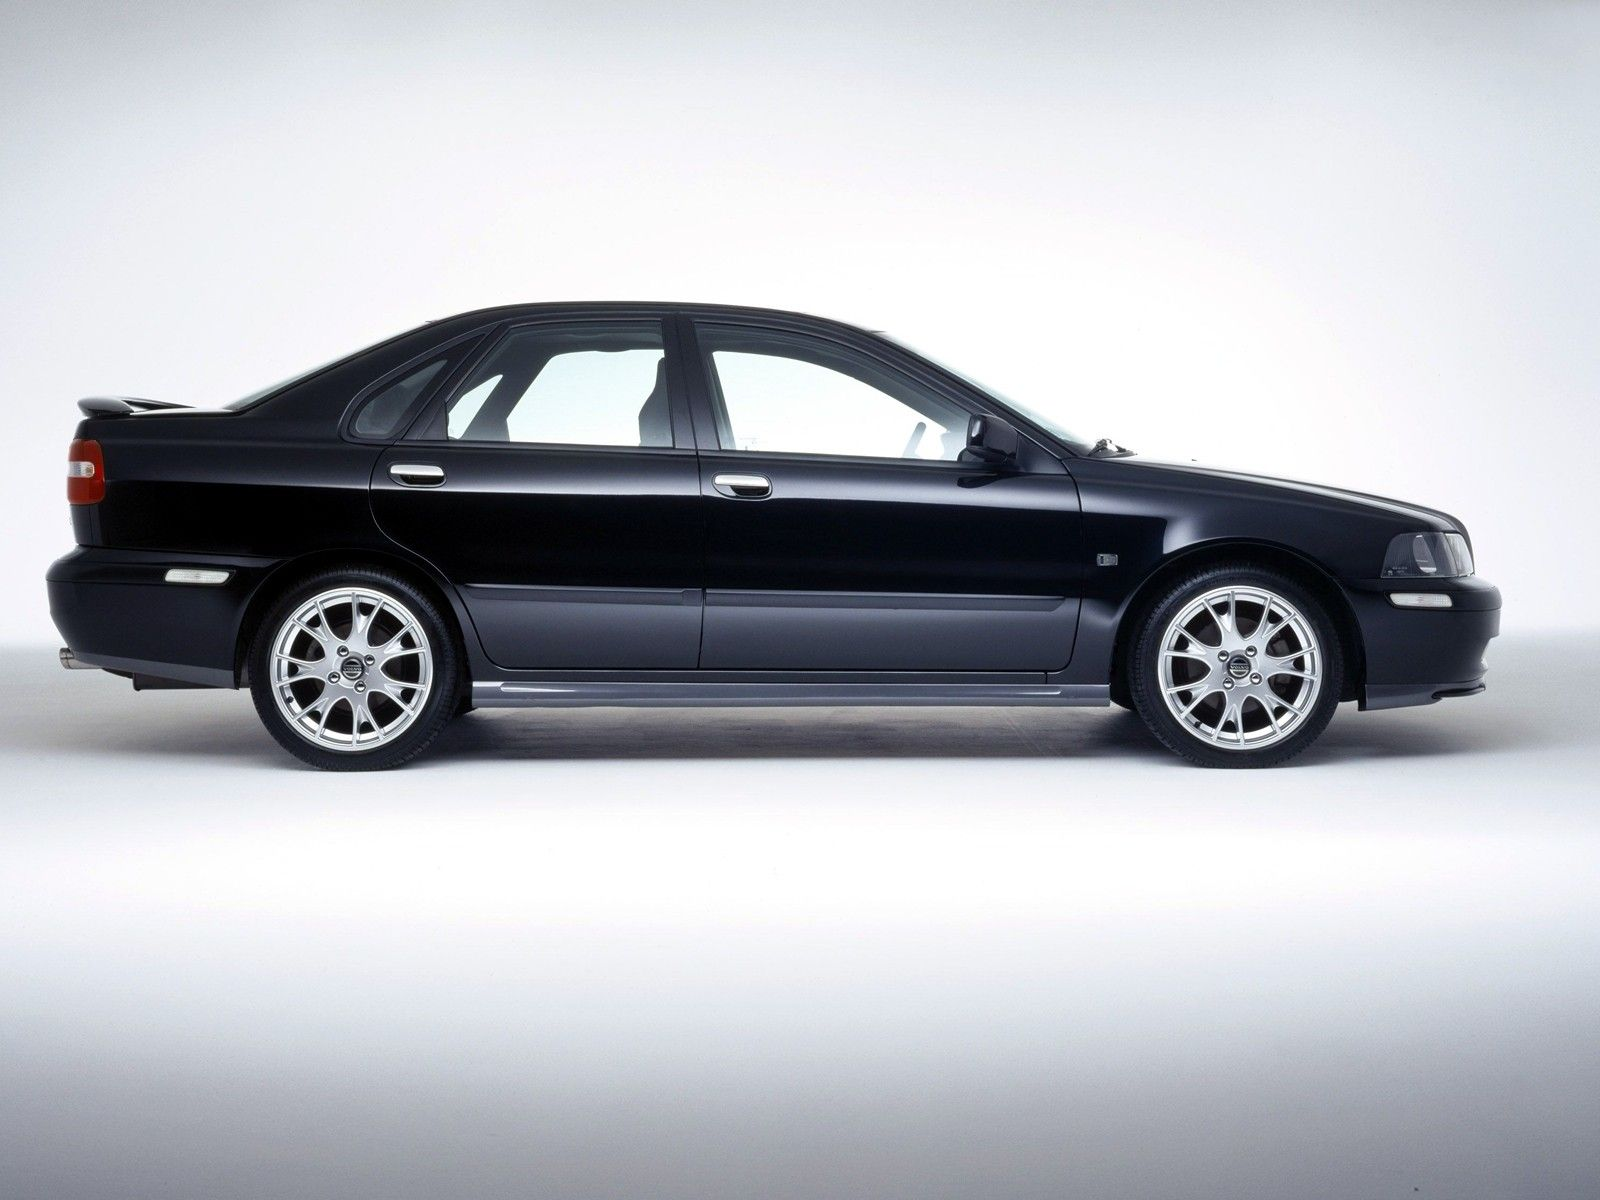 Nordschleife in my tuned volvo s40 t4 volvos pinterest volvo s40 volvo and volvo cars